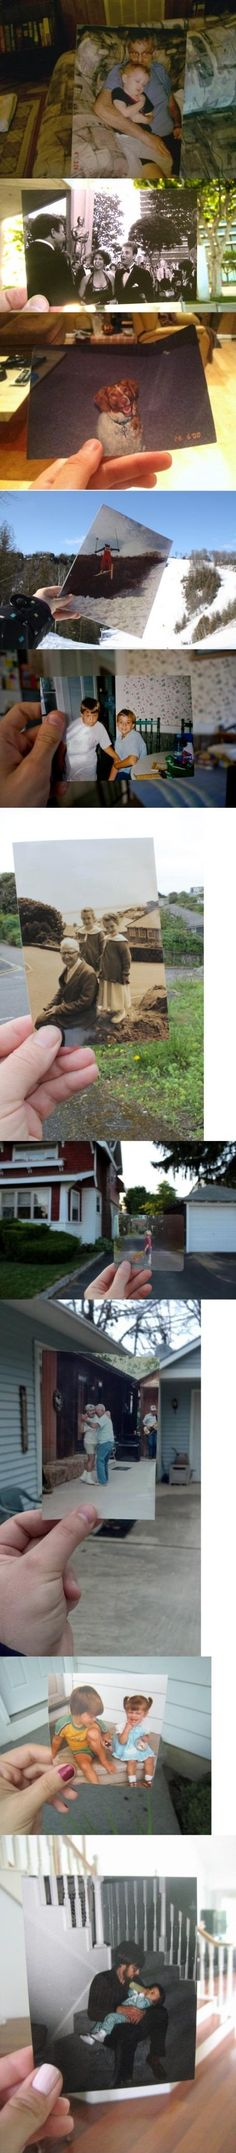 Bridging the past with today...cool idea!